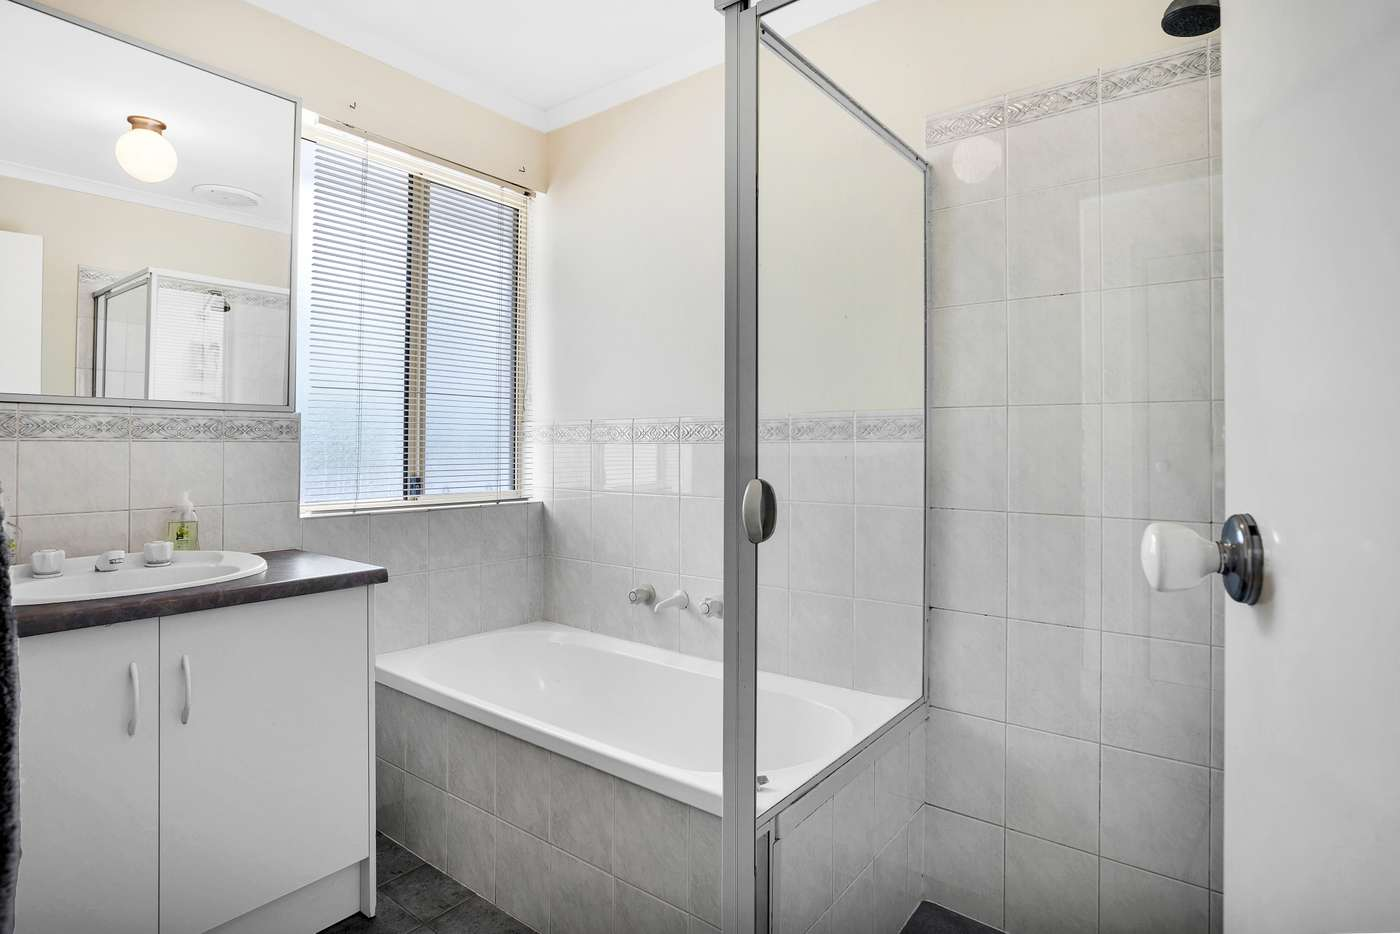 Sixth view of Homely house listing, 210 Brodie Road, Morphett Vale SA 5162